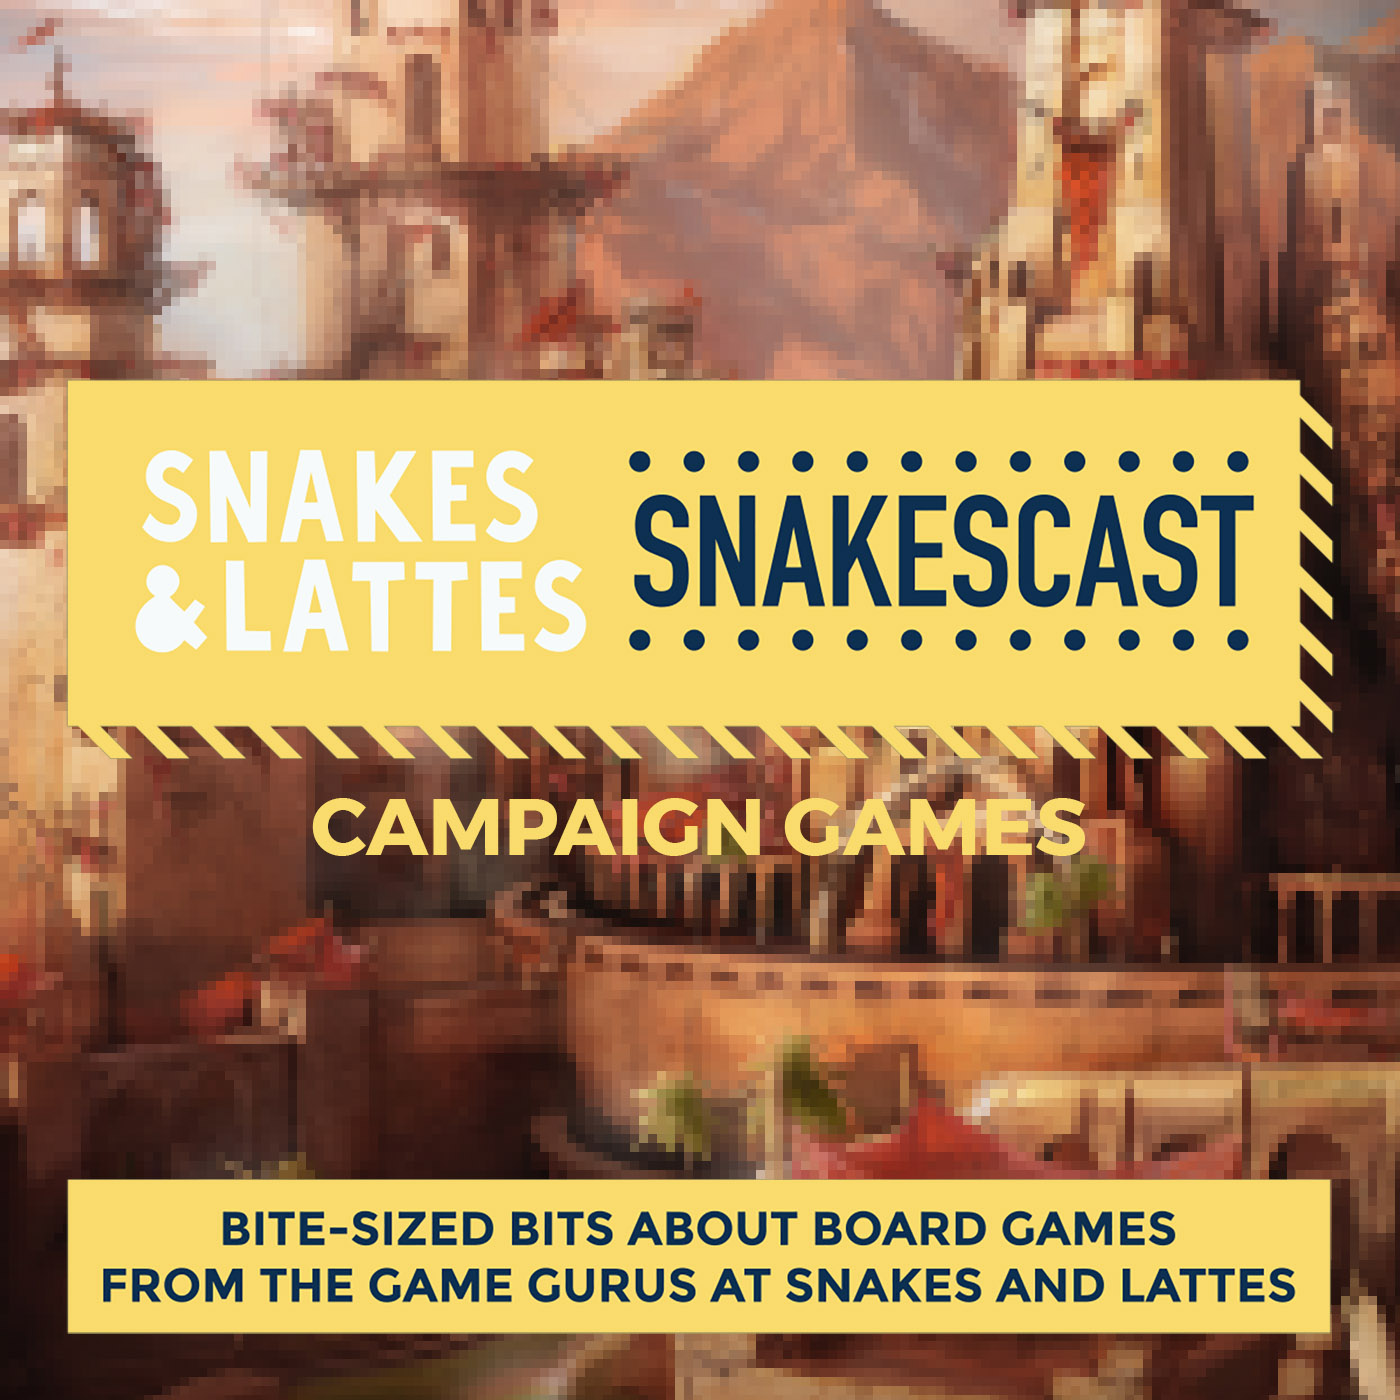 Campaign Games, Part 3 - Campaigns for everyone!